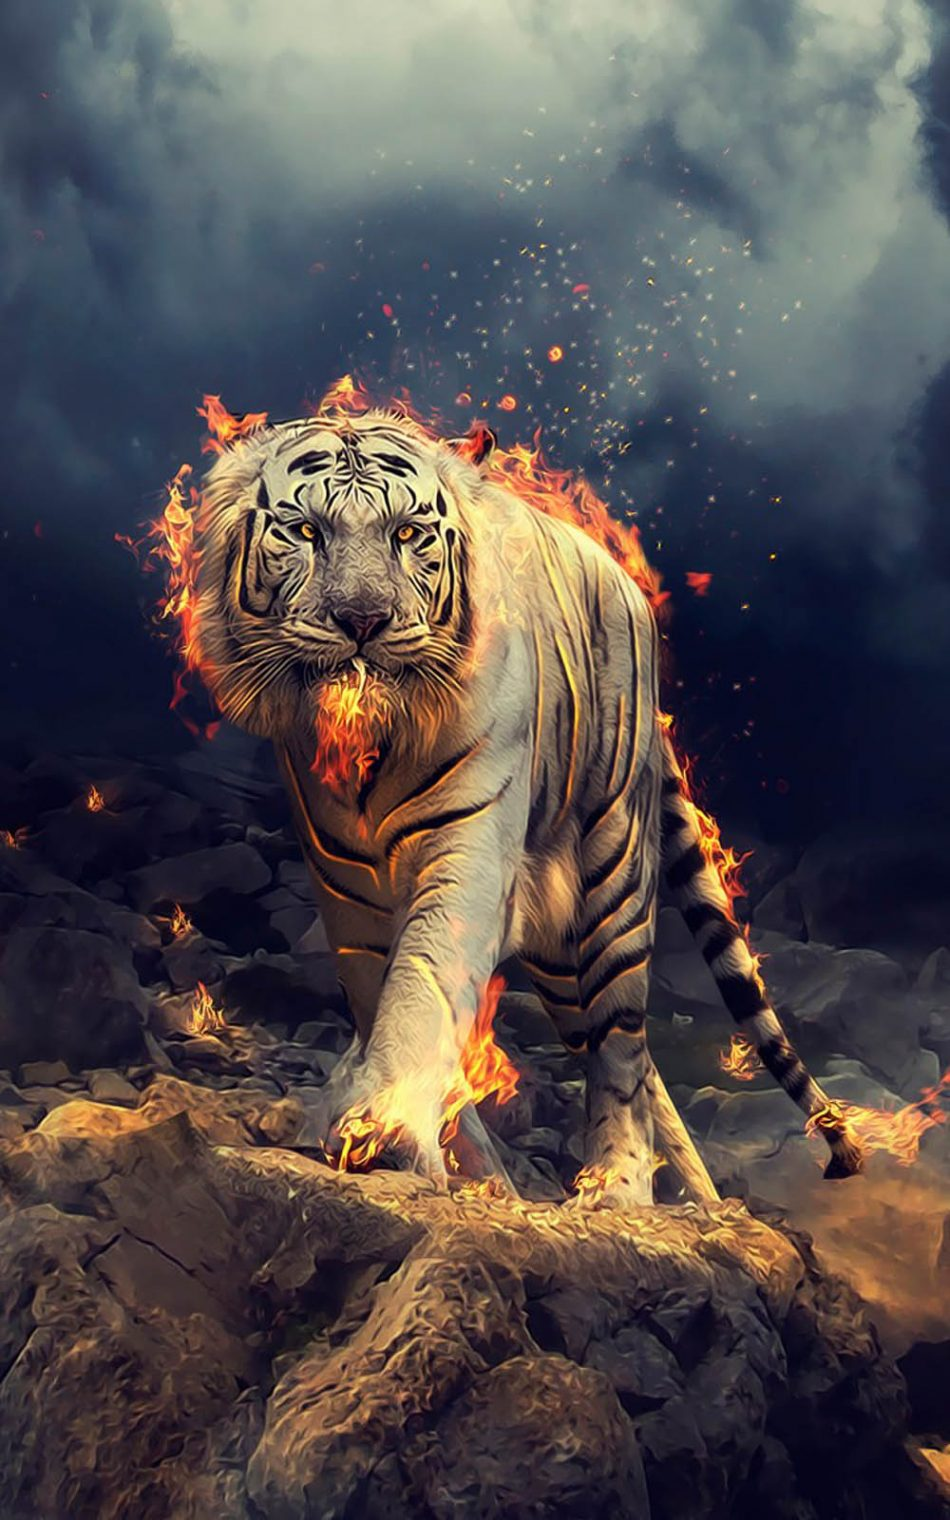 Popular Wallpaper Mobile Tiger - White-Tiger-Fire-CGI-HD-Mobile-Wallpaper-950x1520  Collection_391613.jpg